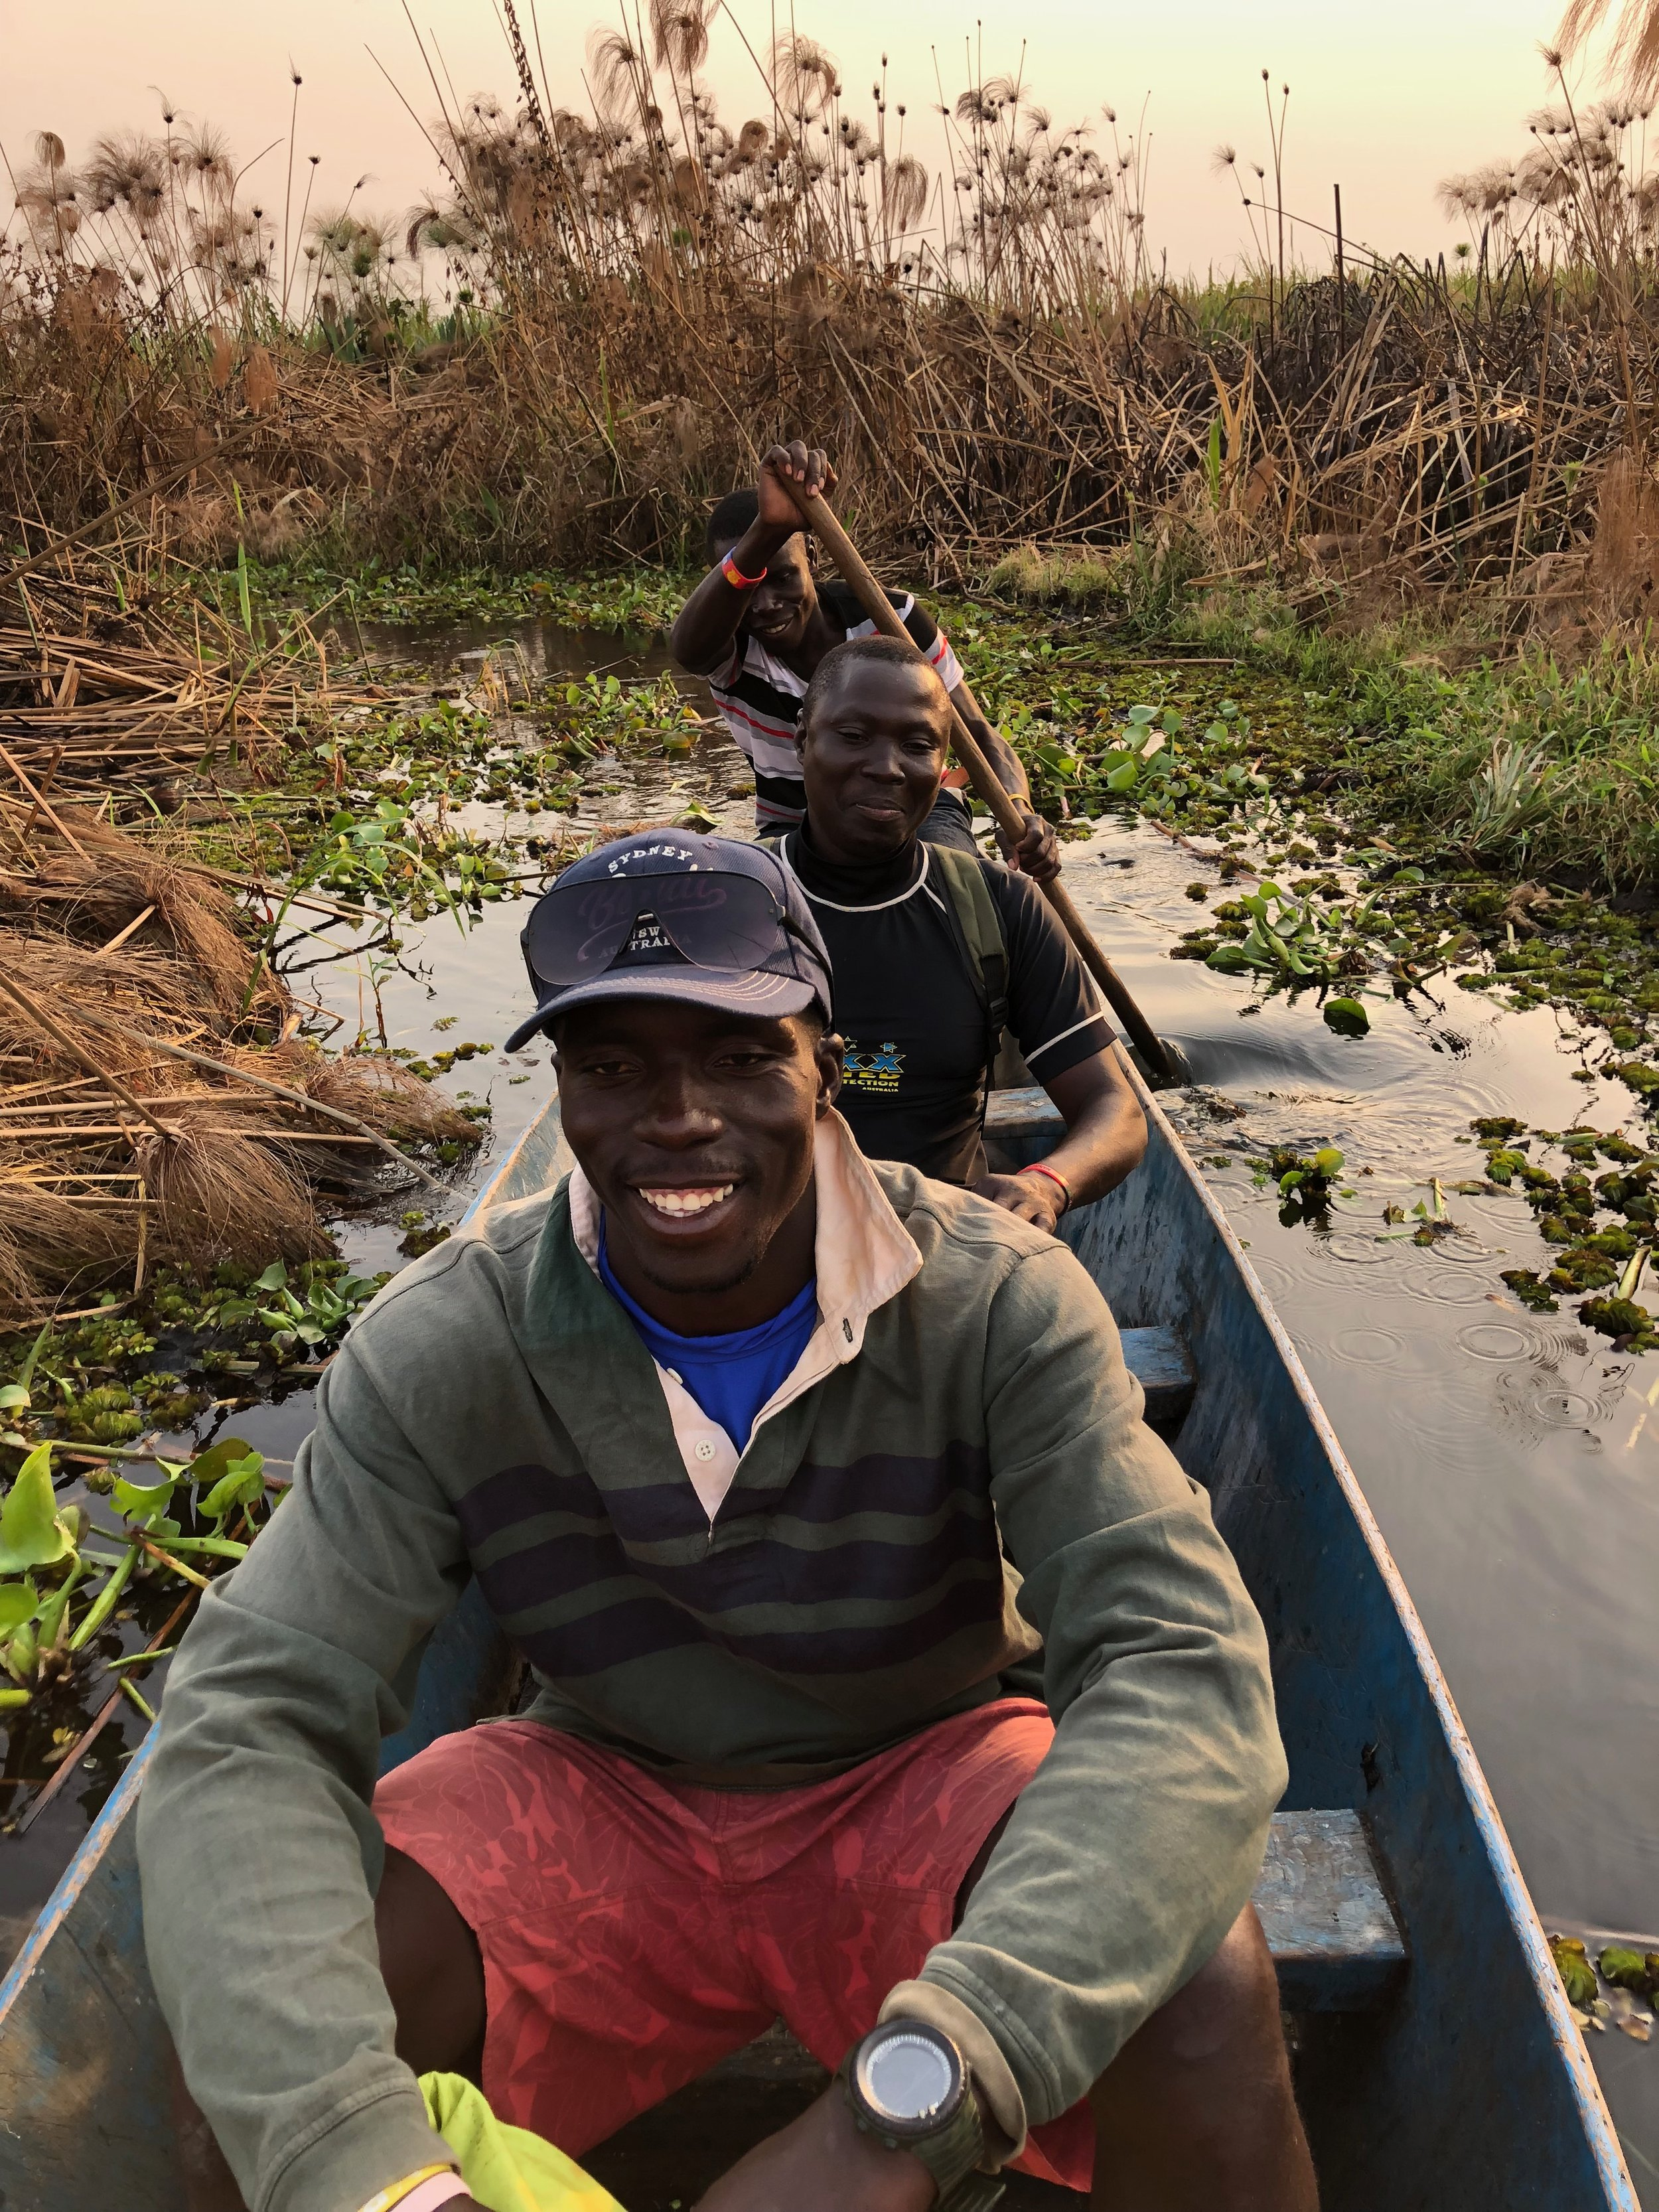 KOA  Another highly experienced rafting guide. He's won the Nile river festival endurance race taking on some of the most dangerous rapids on the river. Knicknamed the water adder on the trip he did a lot more than stop the rice from burning! -